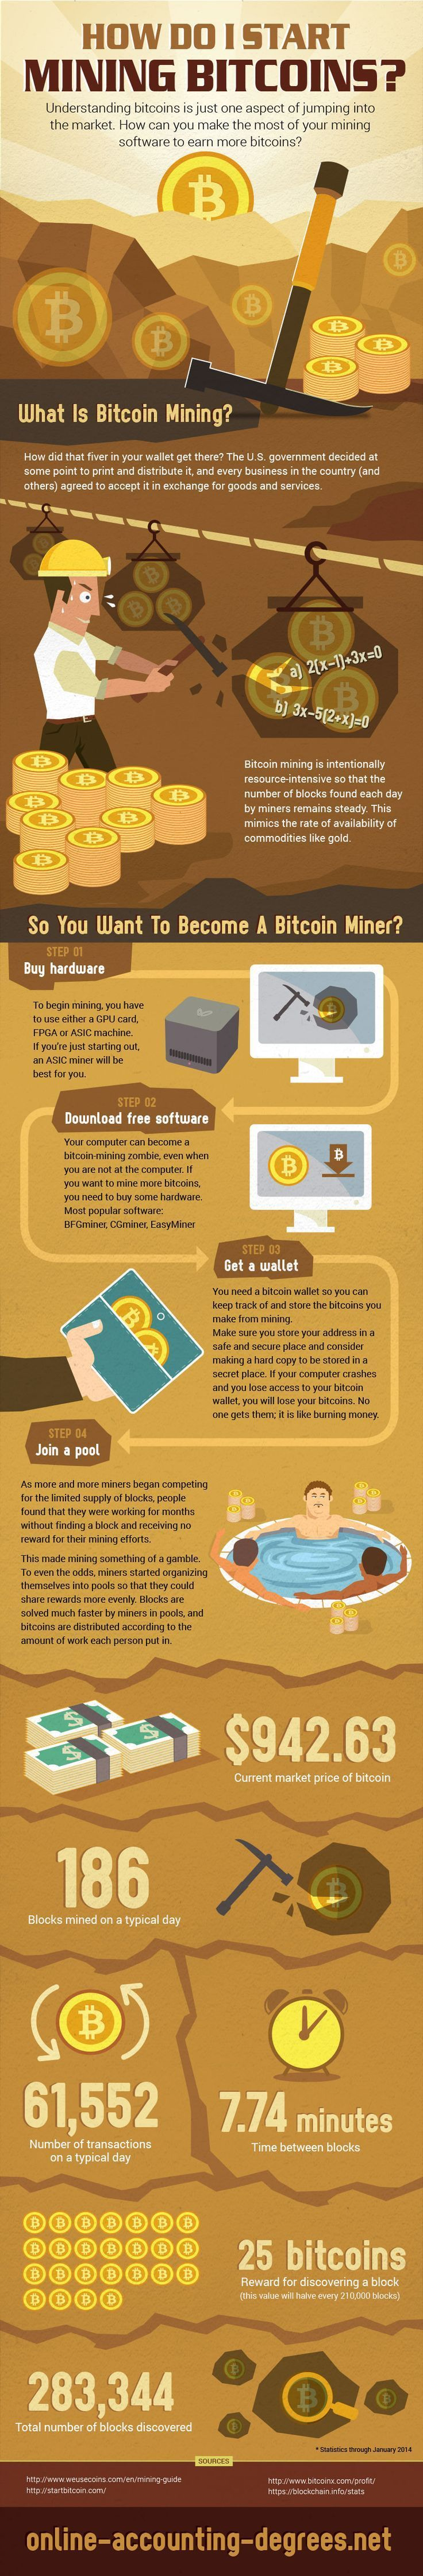 Want to learn how to mine bitcoins? Check it out here. | NextStep Hub | Business Ideas